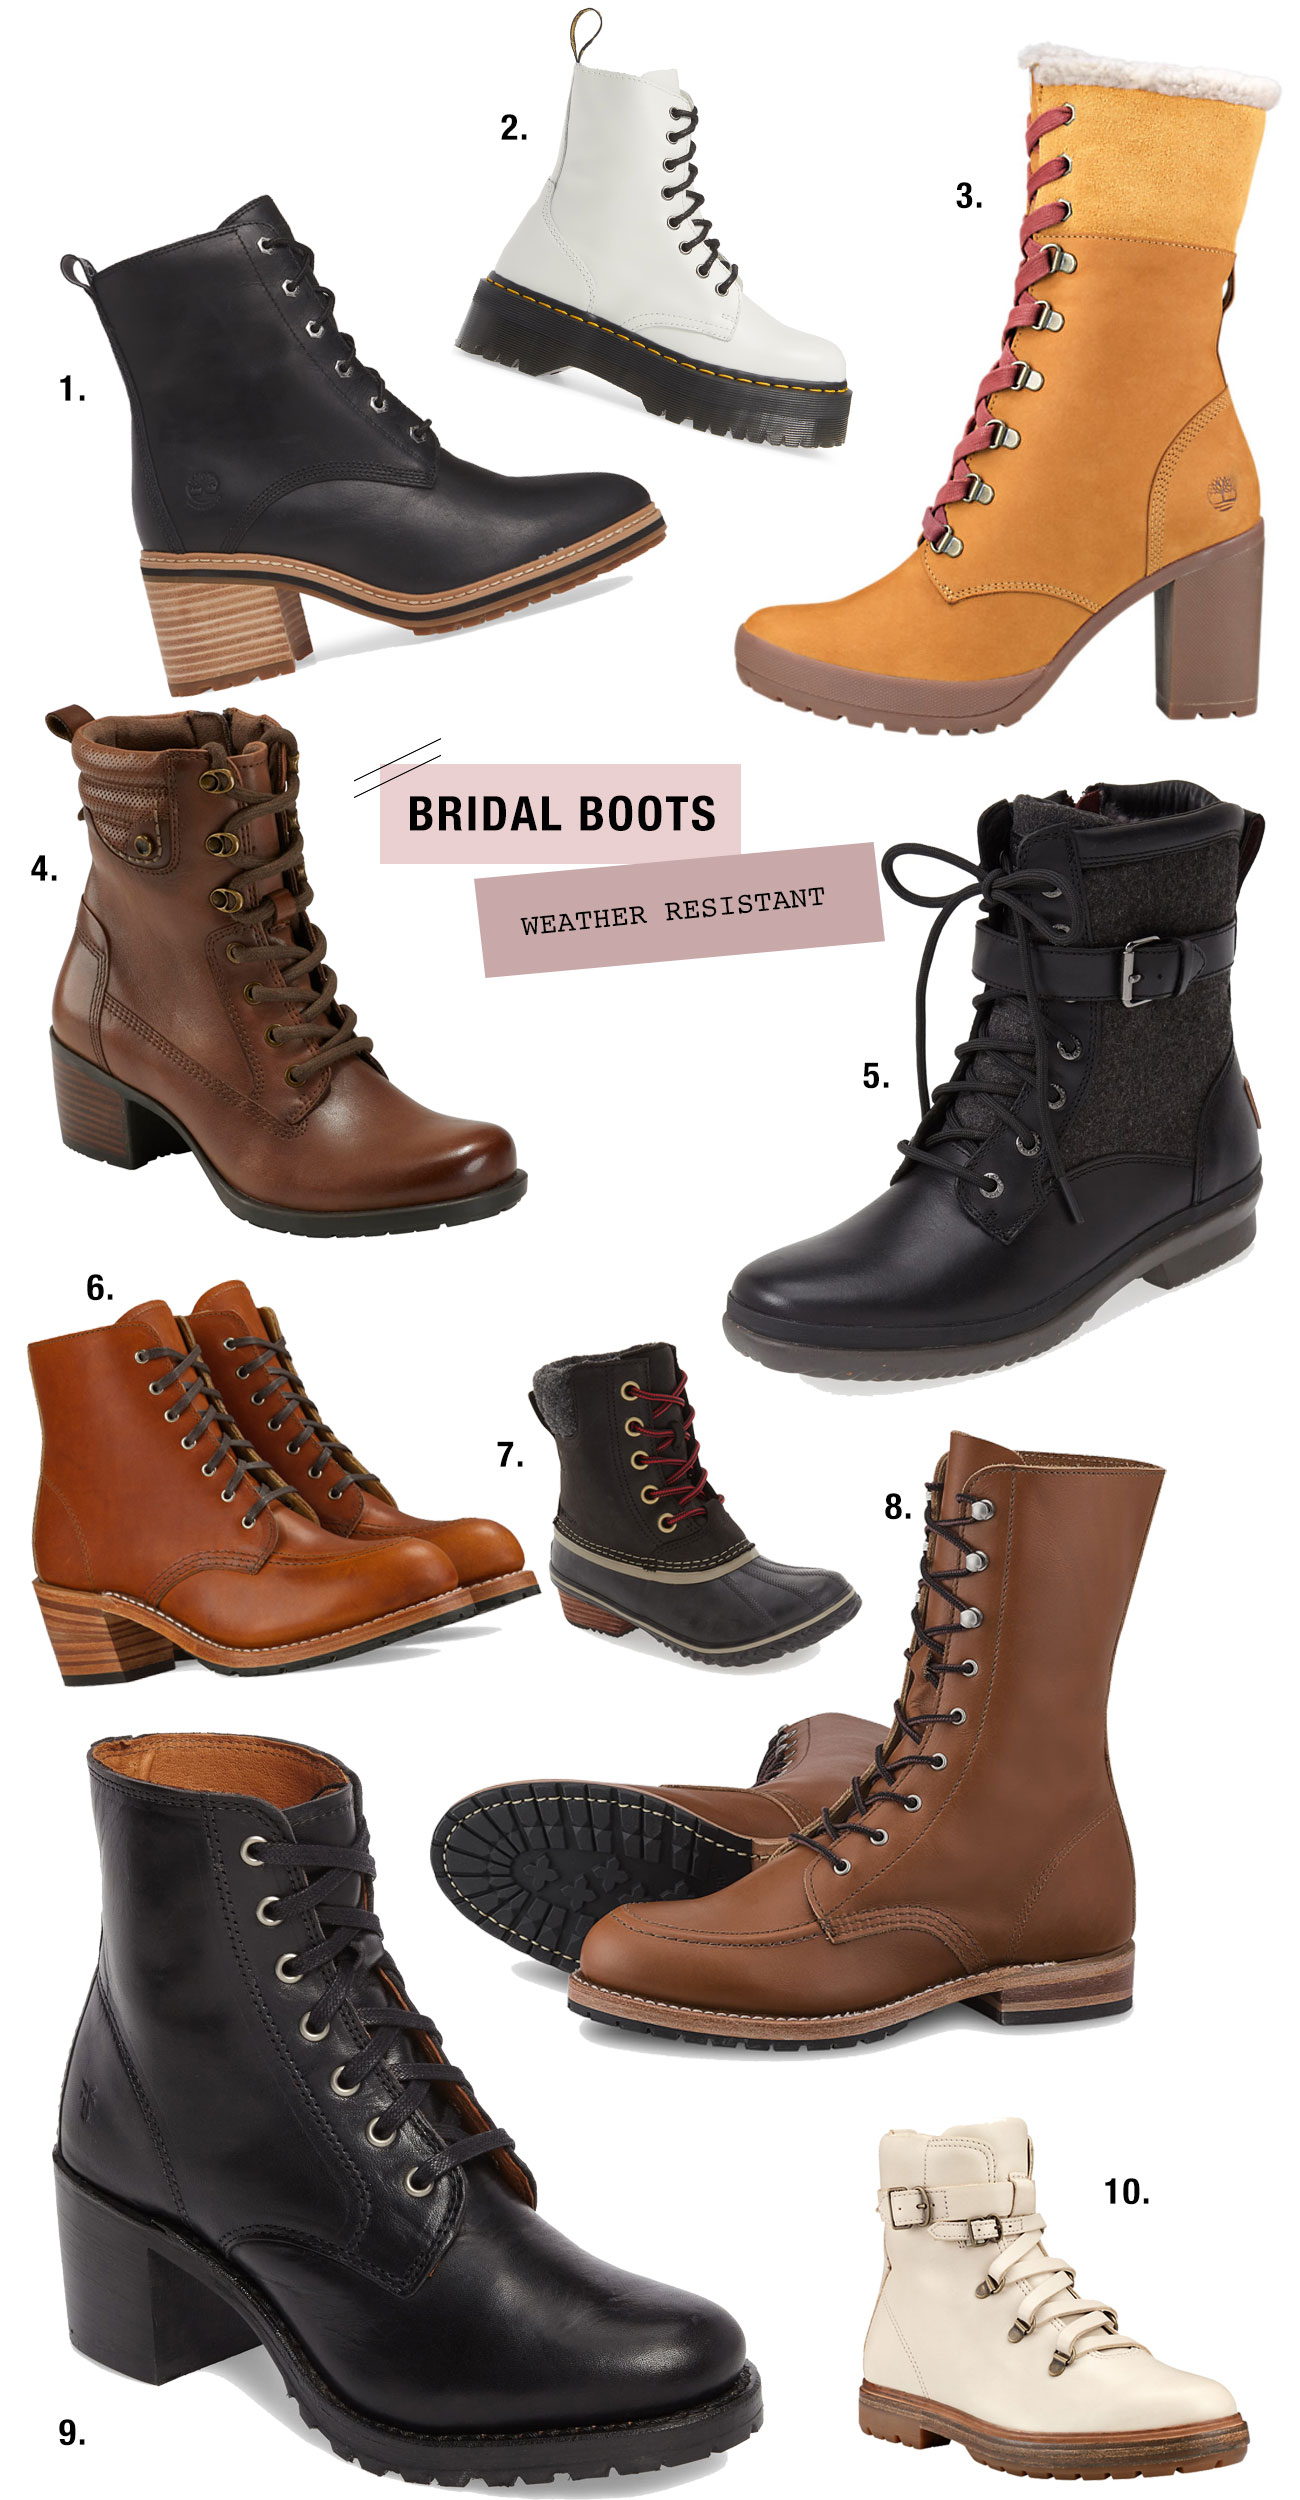 weather resistant bridal boots for elopements + adventure